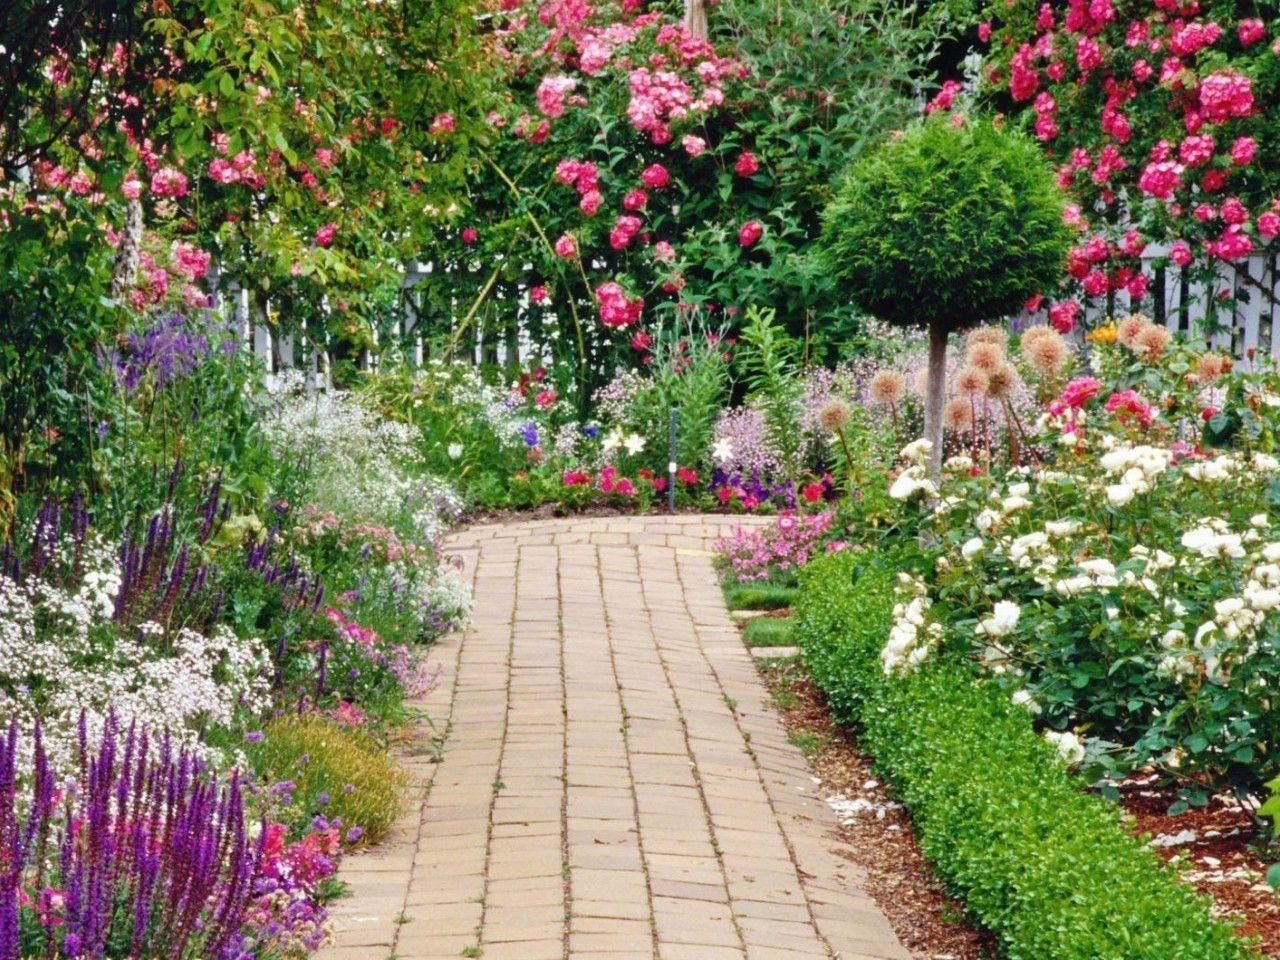 Flower Garden Wallpaper Background Hd